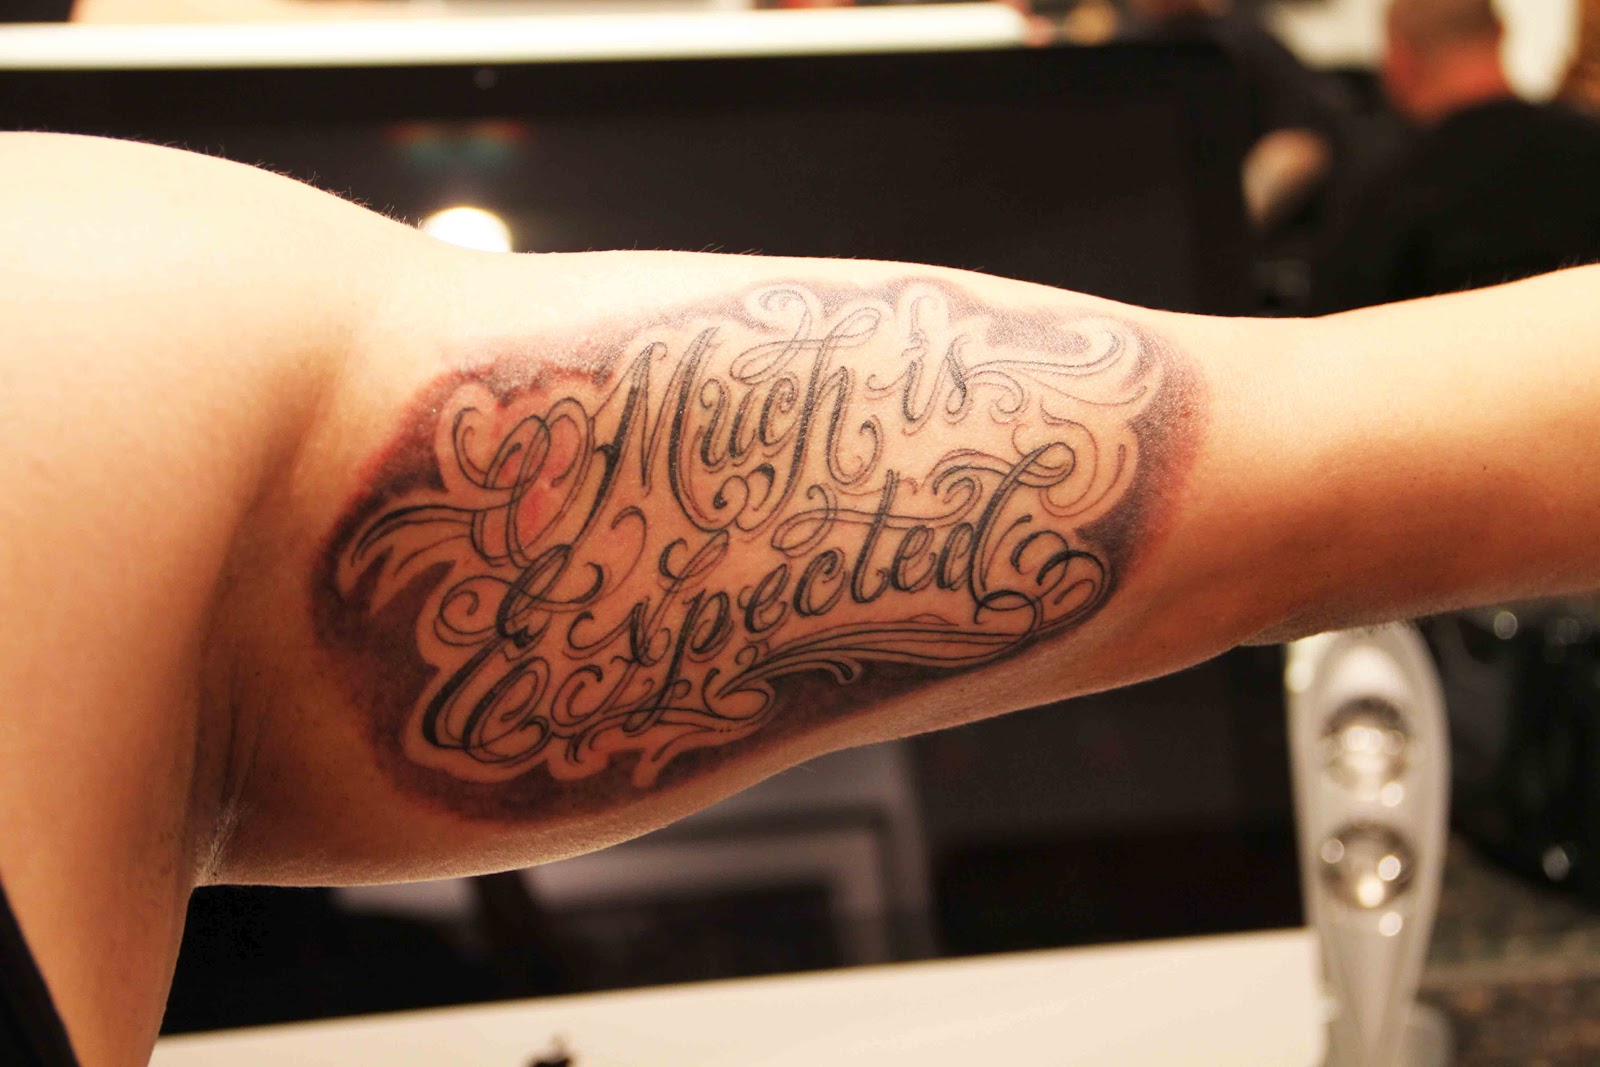 Tattoo Of The Tattoos: TO WHOM MUCH IS GIVEN MUCH IS EXPECTED